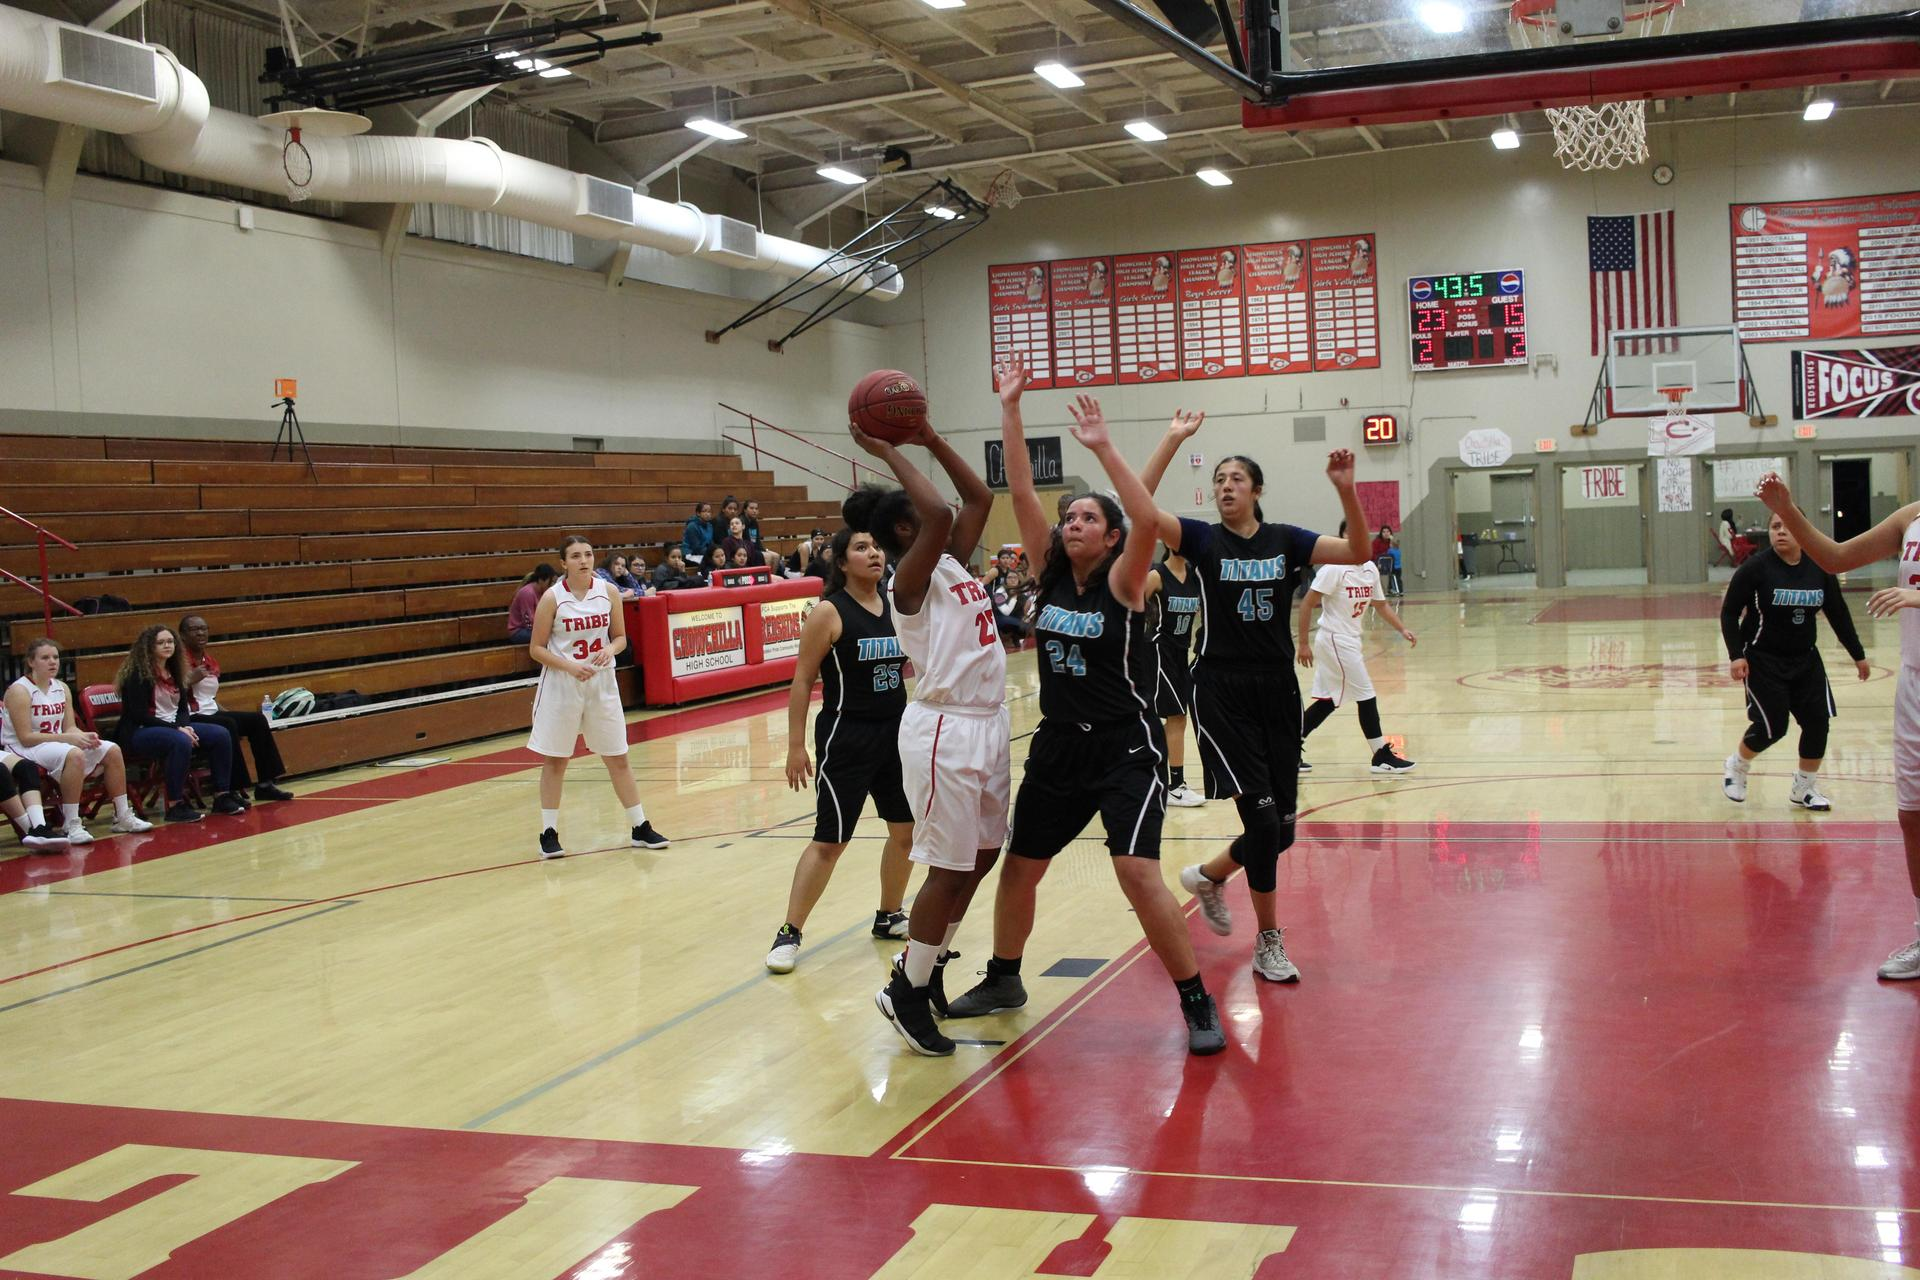 Girls playing basketball against Orange Cove